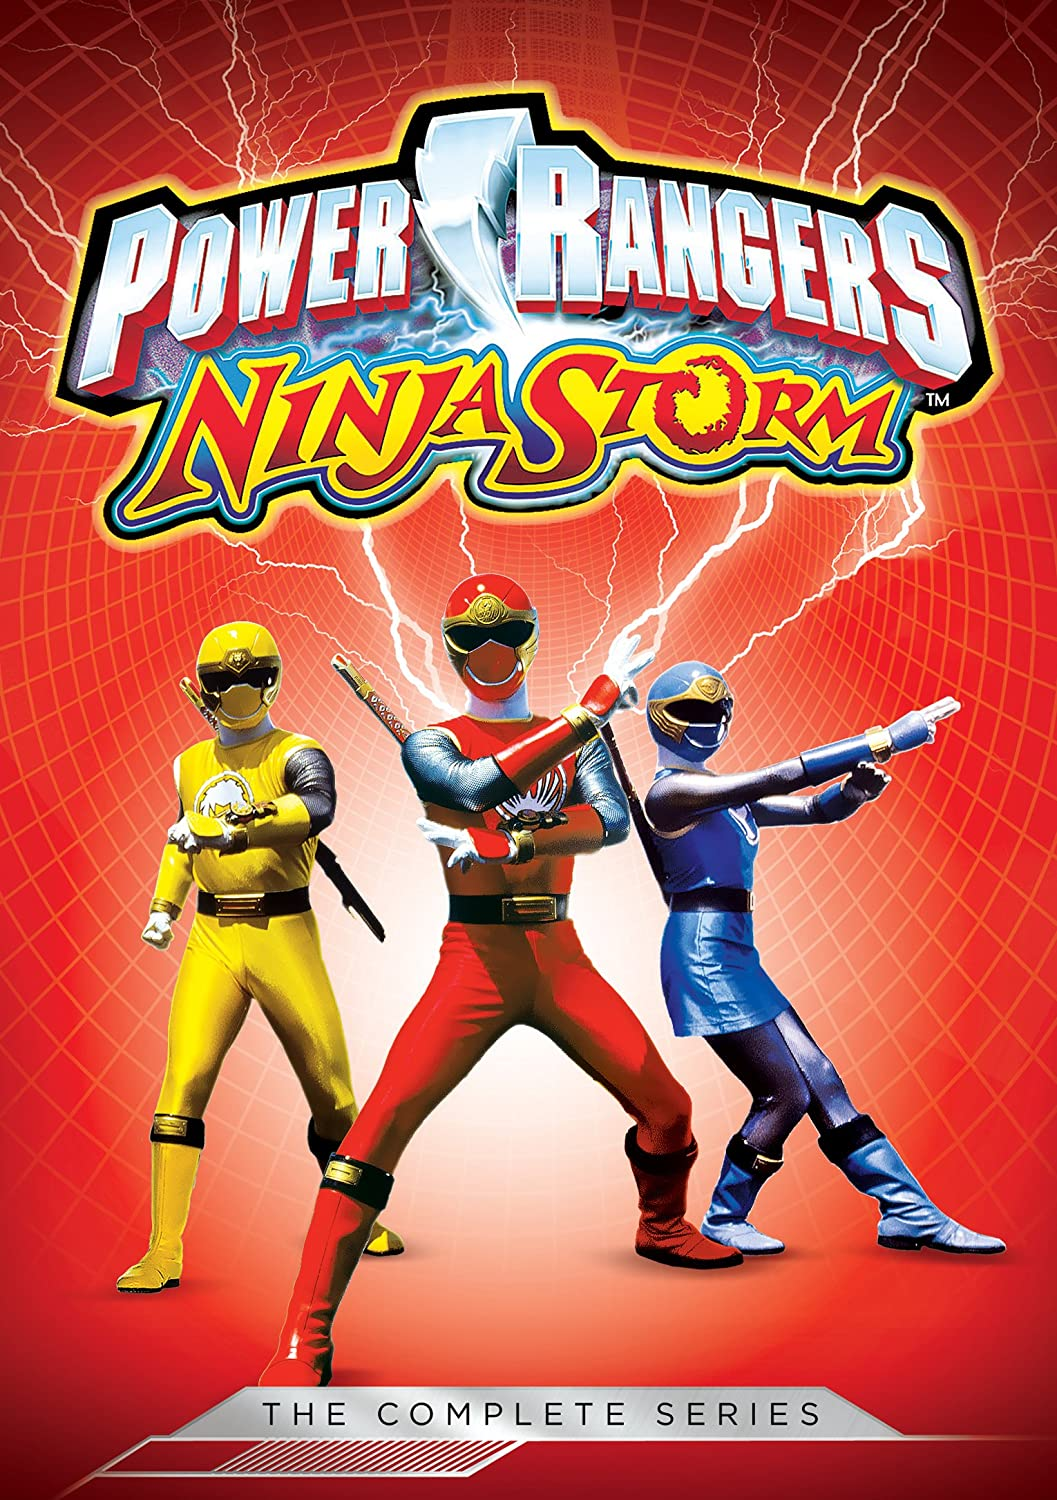 Amazon.com: Power Rangers Ninja Storm: The Complete Series ...